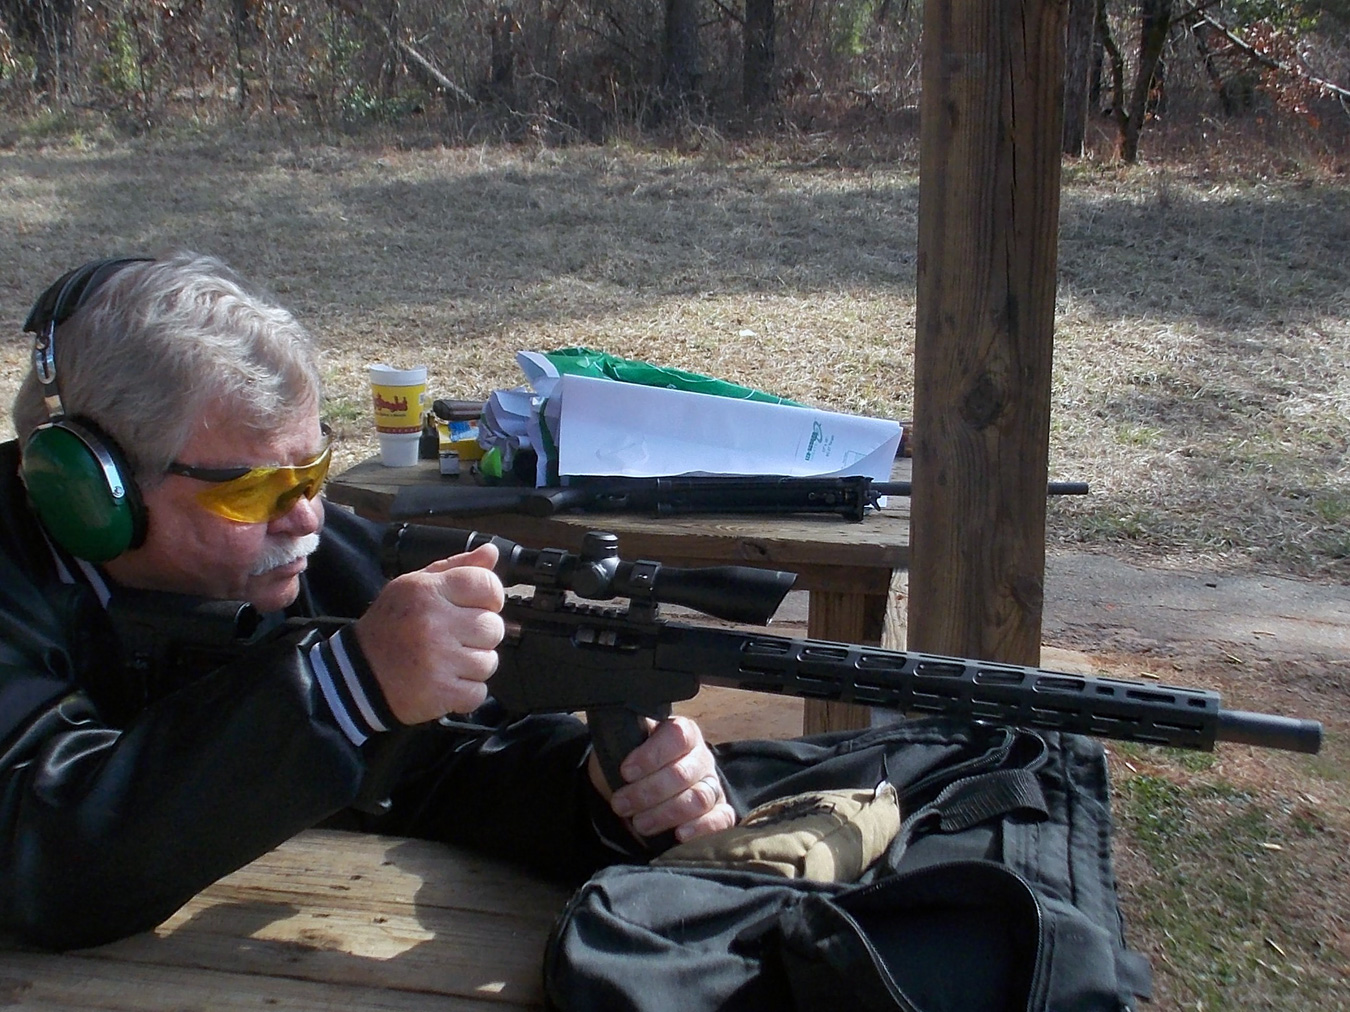 Bob Campbell shooting the Ruger Rimfire Precision rifle from the bench